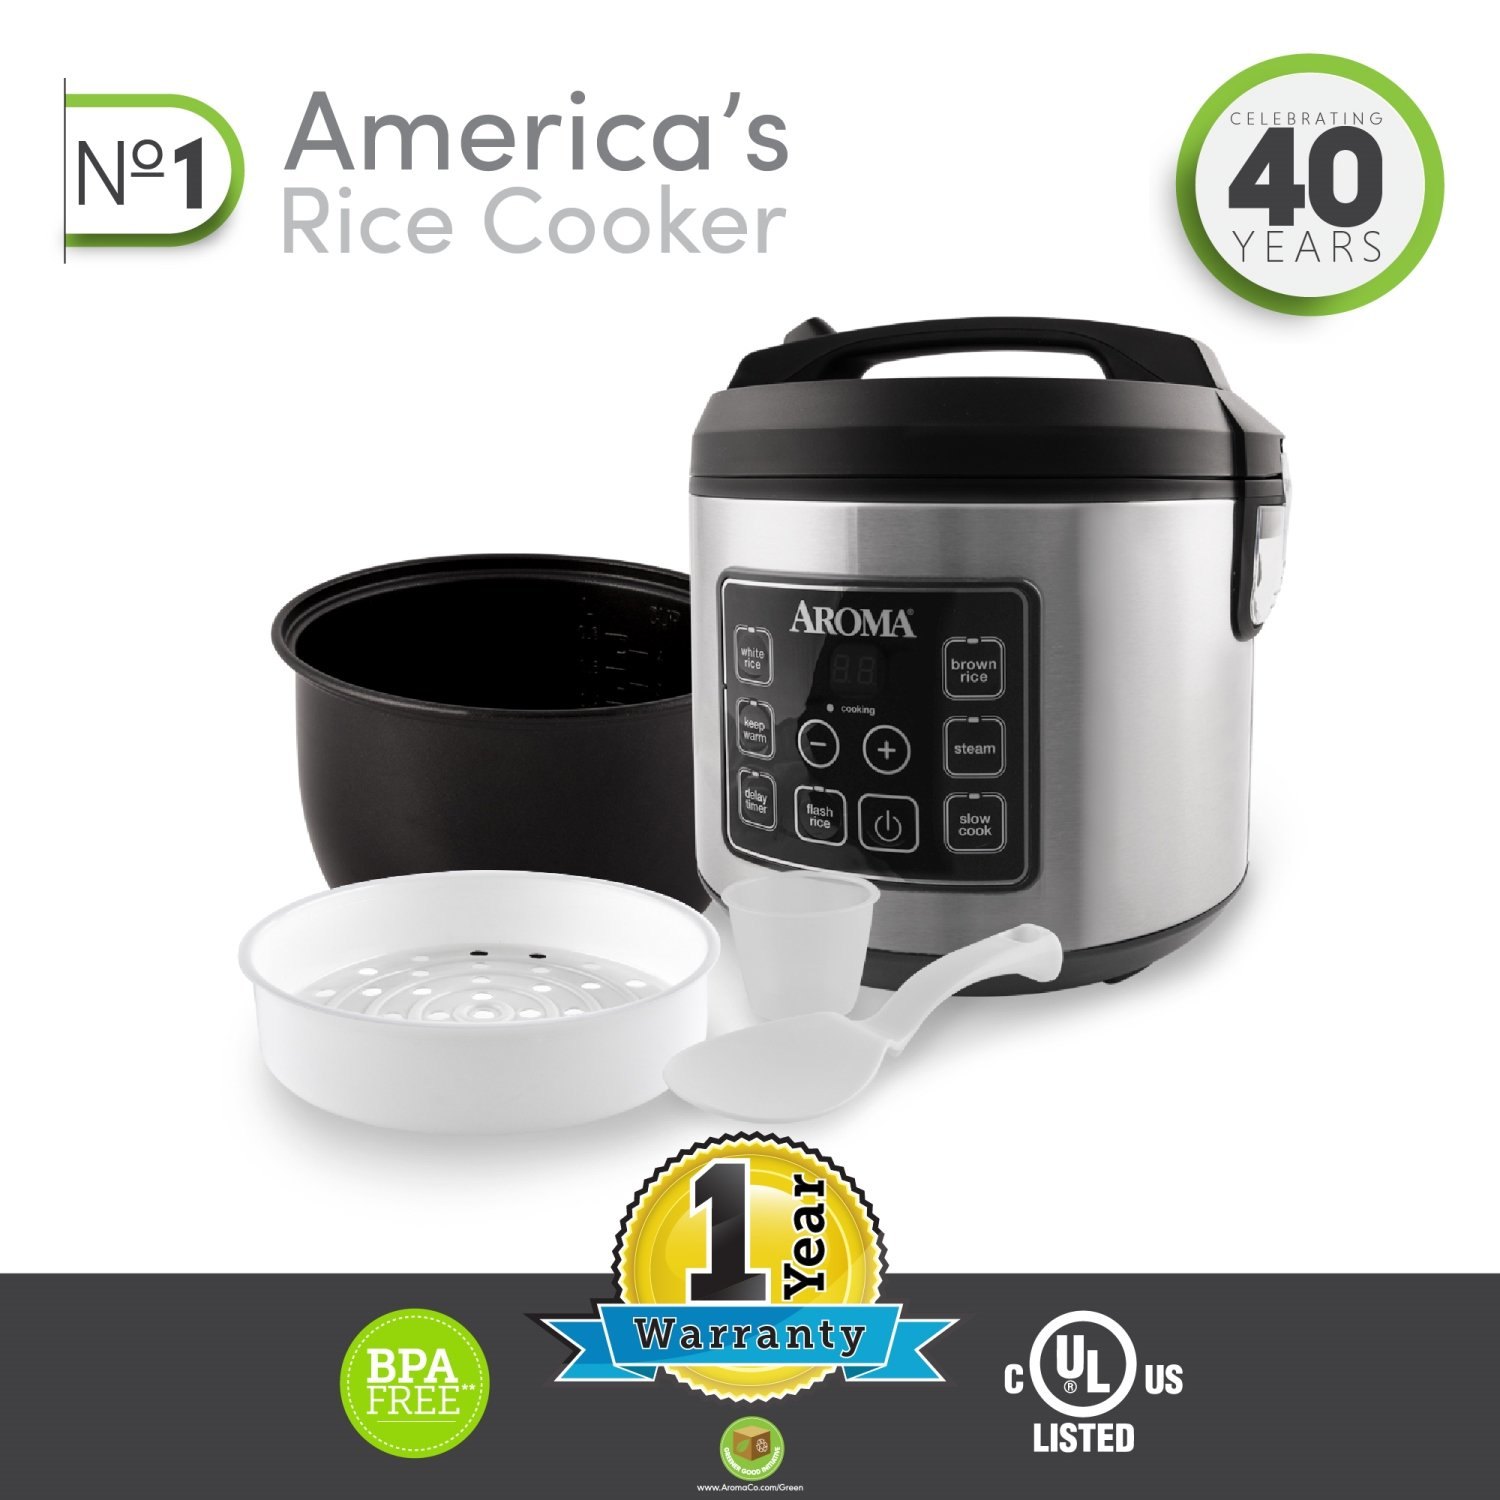 Aroma Housewares 20 Cup Cooked (10 cup uncooked) Digital Rice Cooker, Slow Cooker, Food Steamer, SS Exterior (ARC-150SB) by Aroma Housewares (Image #6)